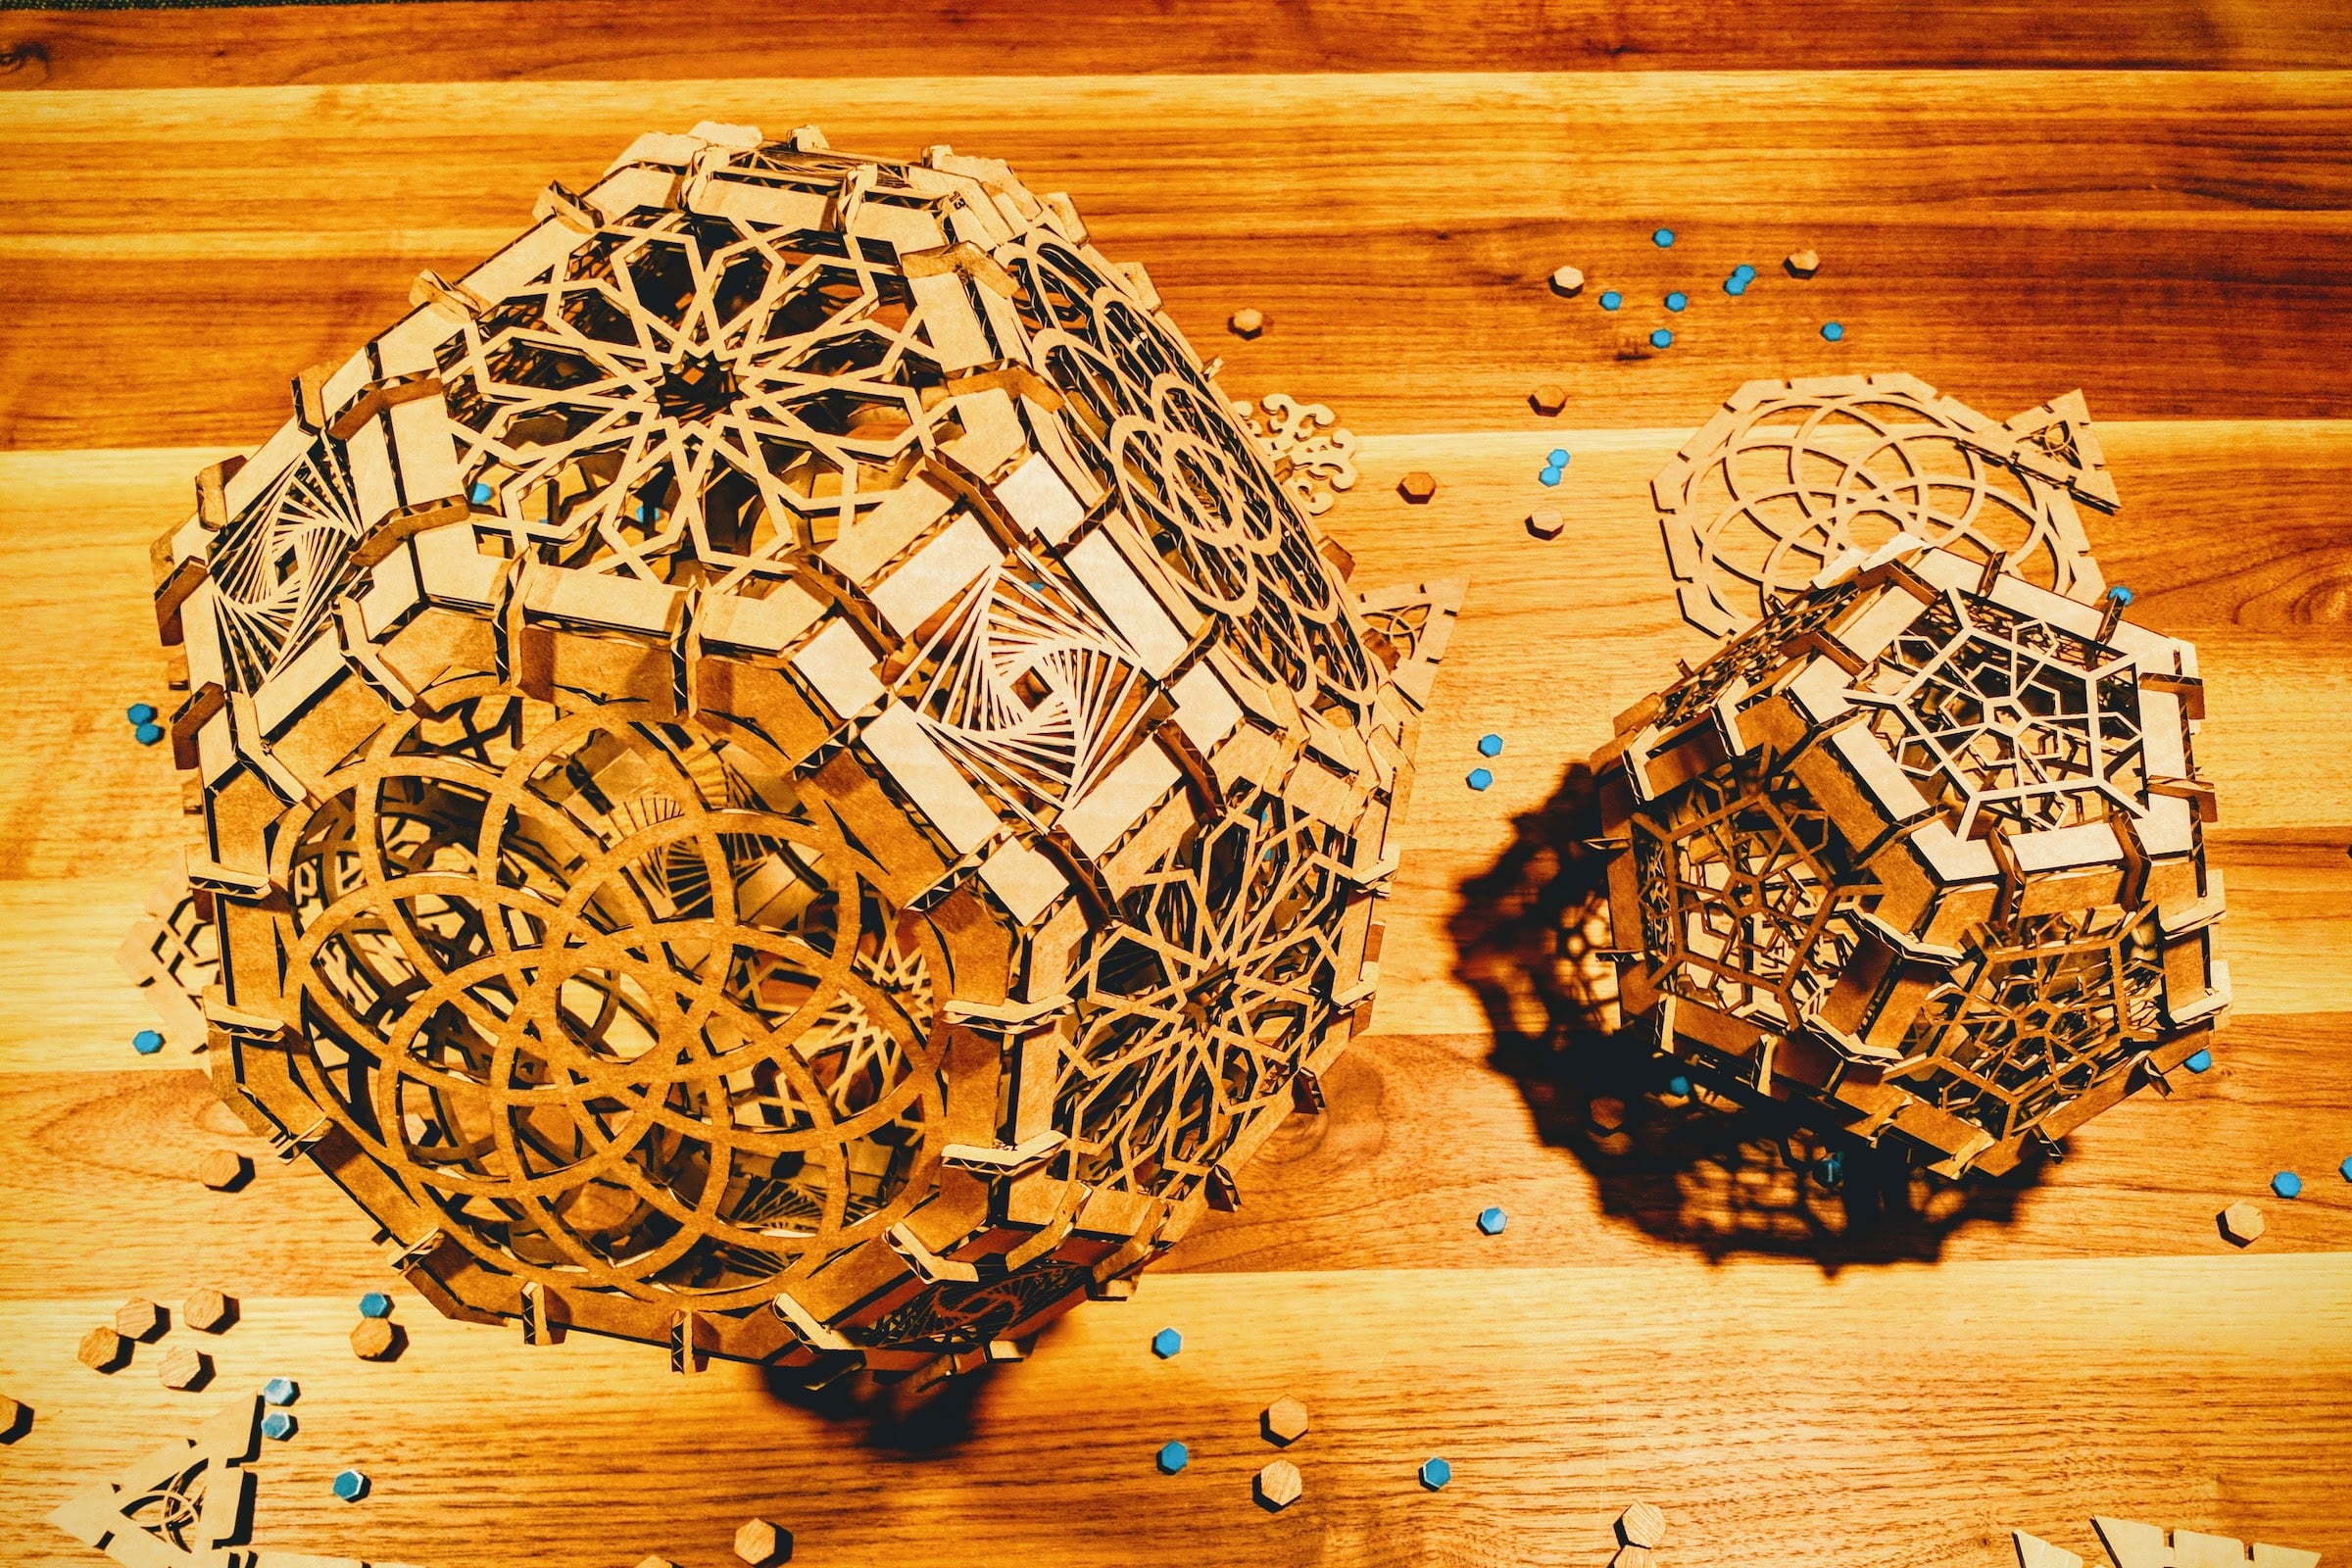 Creating Archimedean solids during the laser cutting week